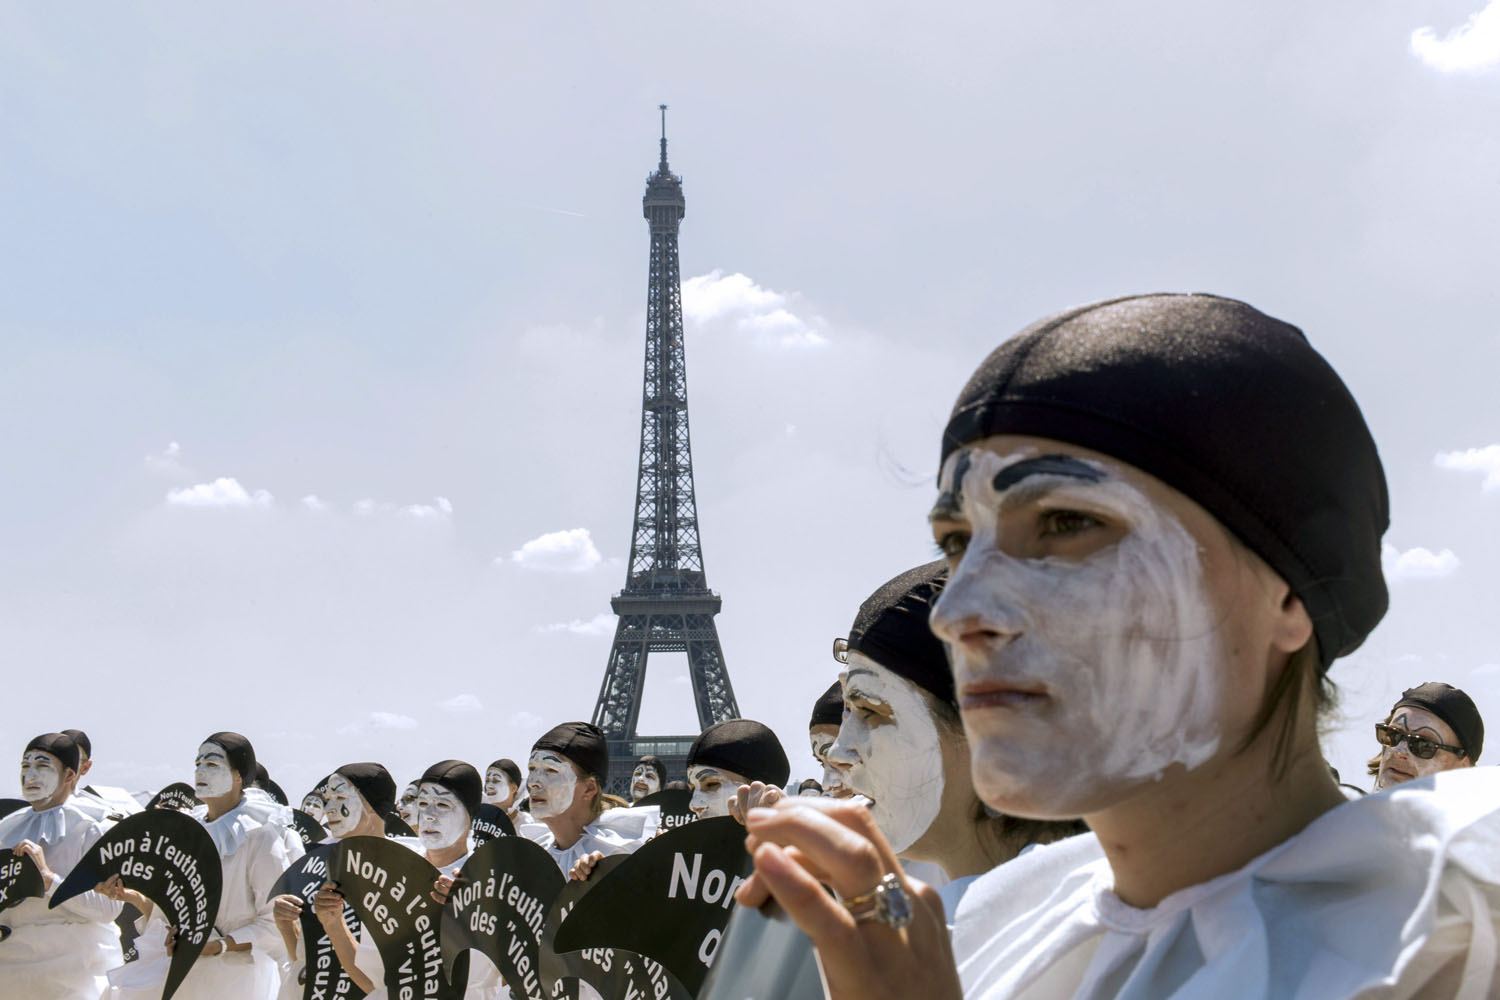 Jun. 24, 2014. People dressed as the traditionnal theatre character  Pierrot  hold placards reading  No to euthansia of  old people   as they take part in a demonstration against euthanasia for elderly and dependent people on the Trocadero esplanade, also called the Parvis of Human Rights, near the Eiffel Tower in Paris.